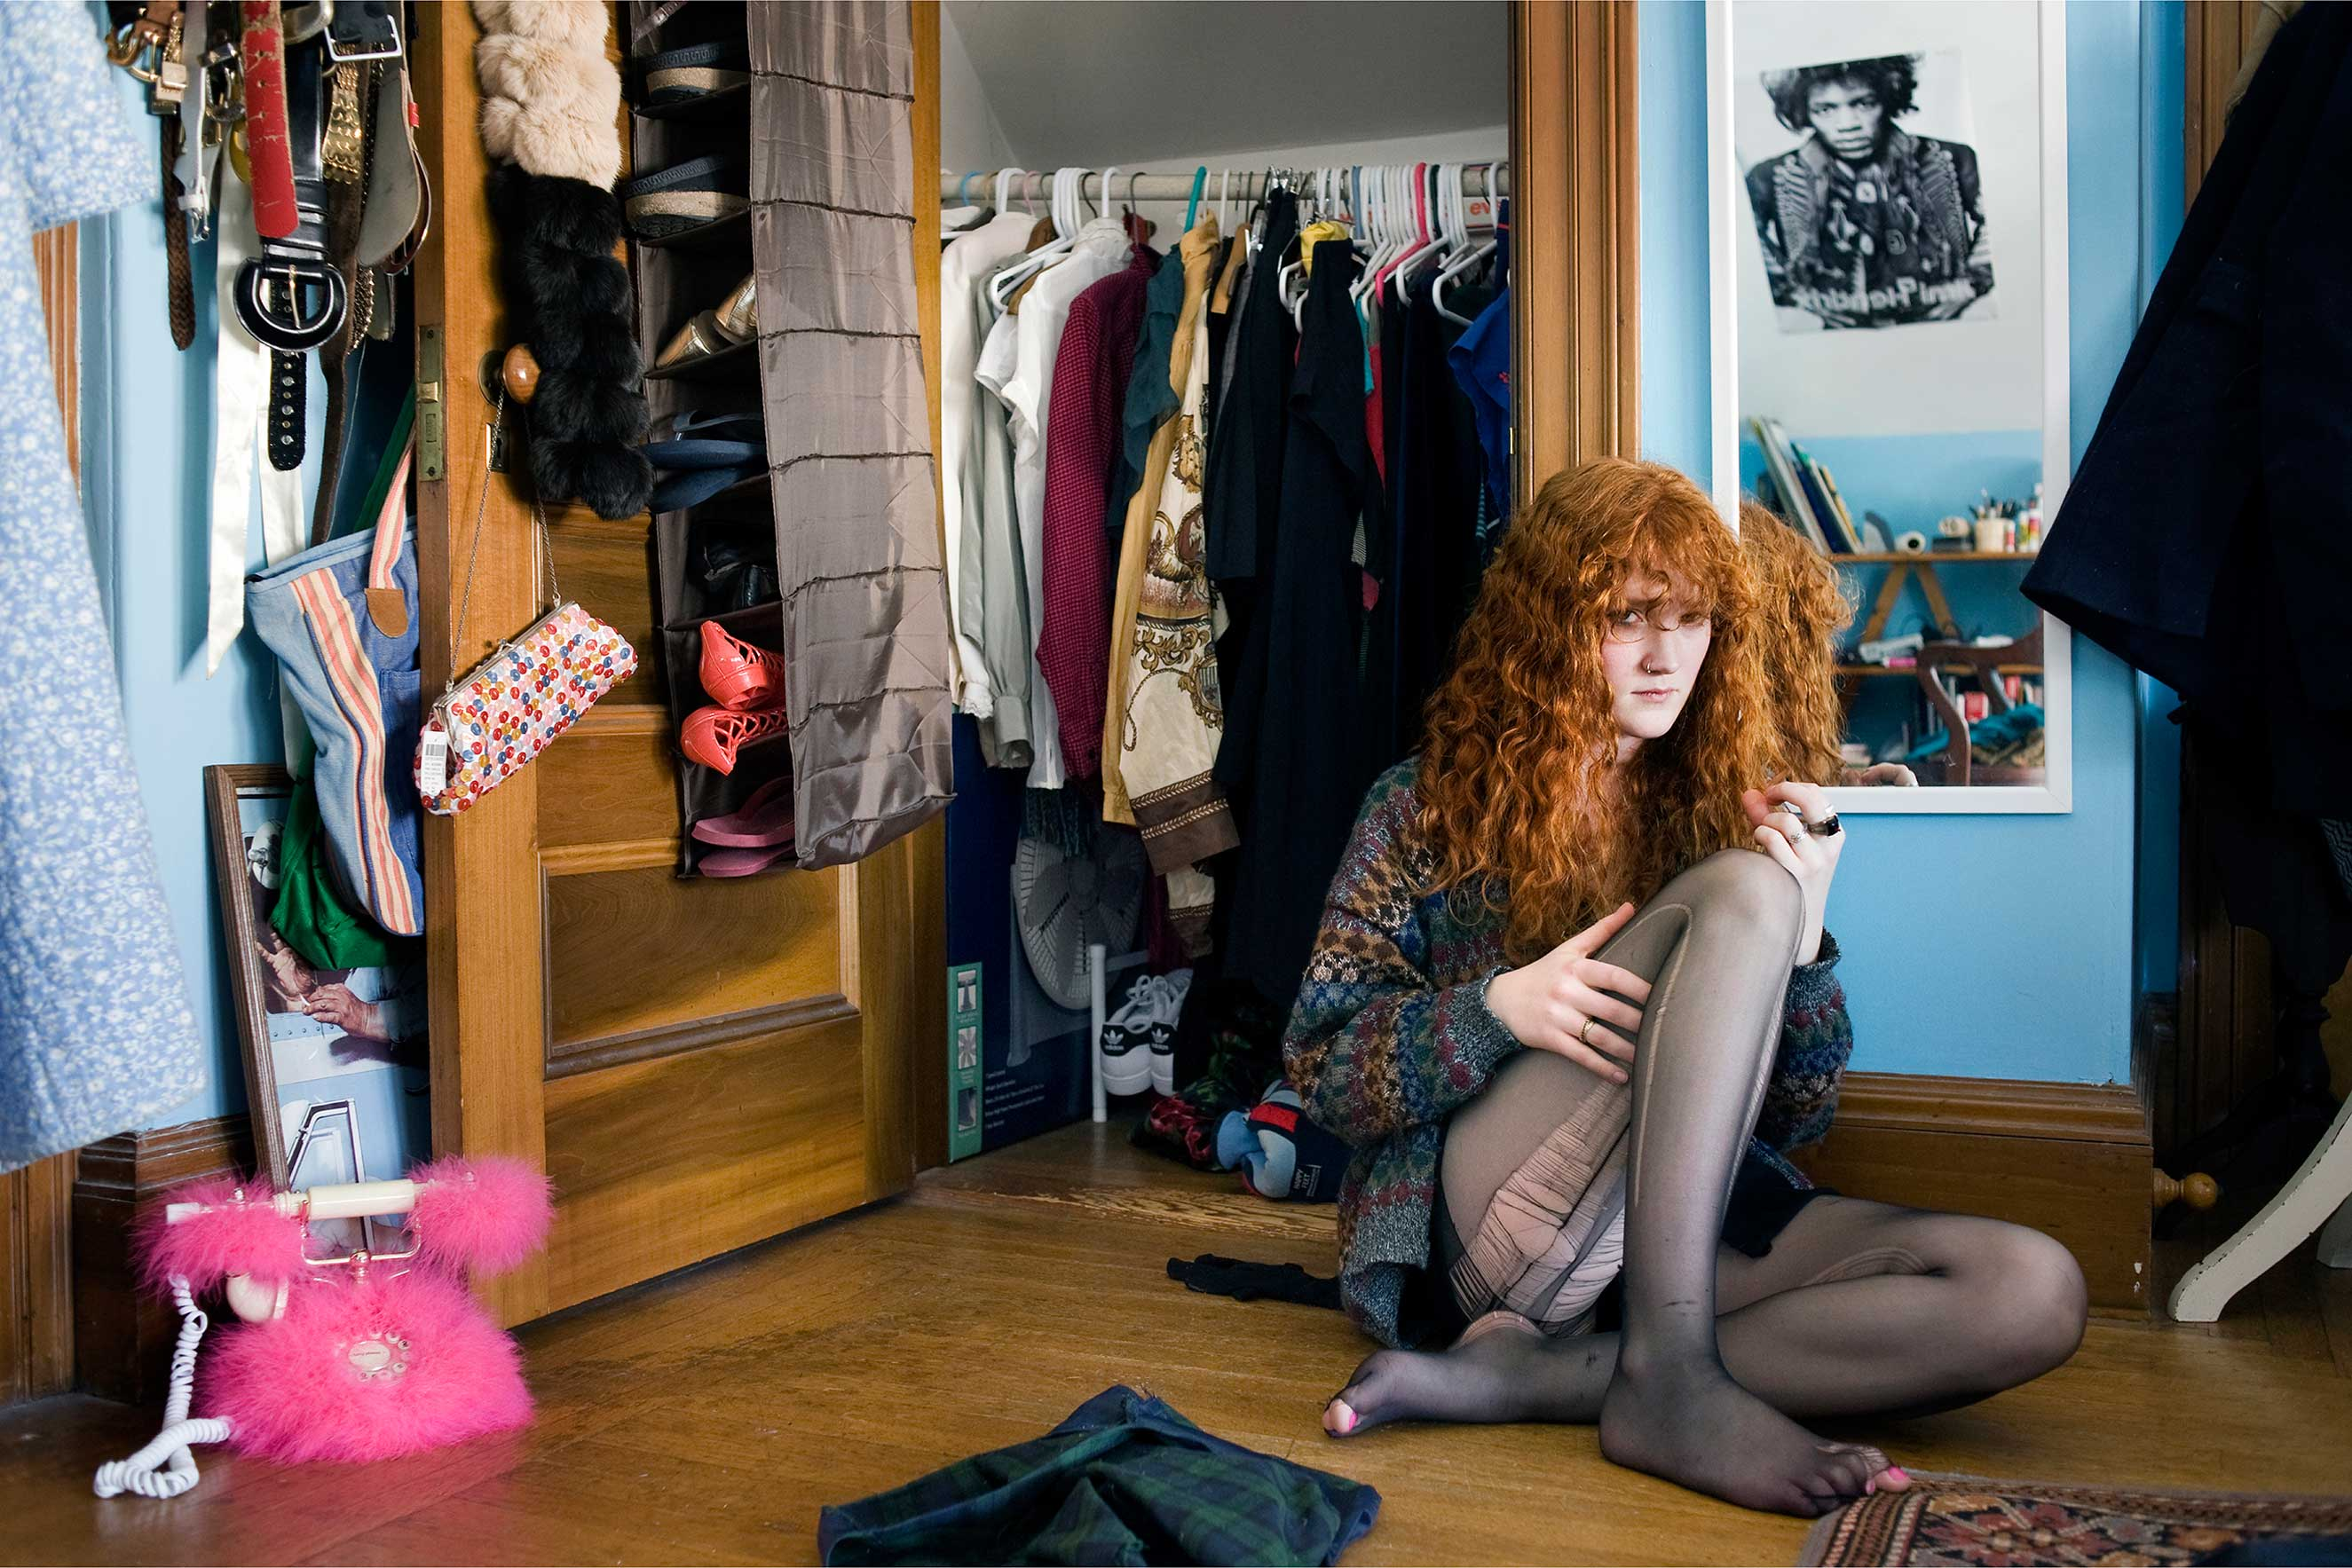 'Anna F, Winchester, MA 2009' in the series, A Girl and Her Room.